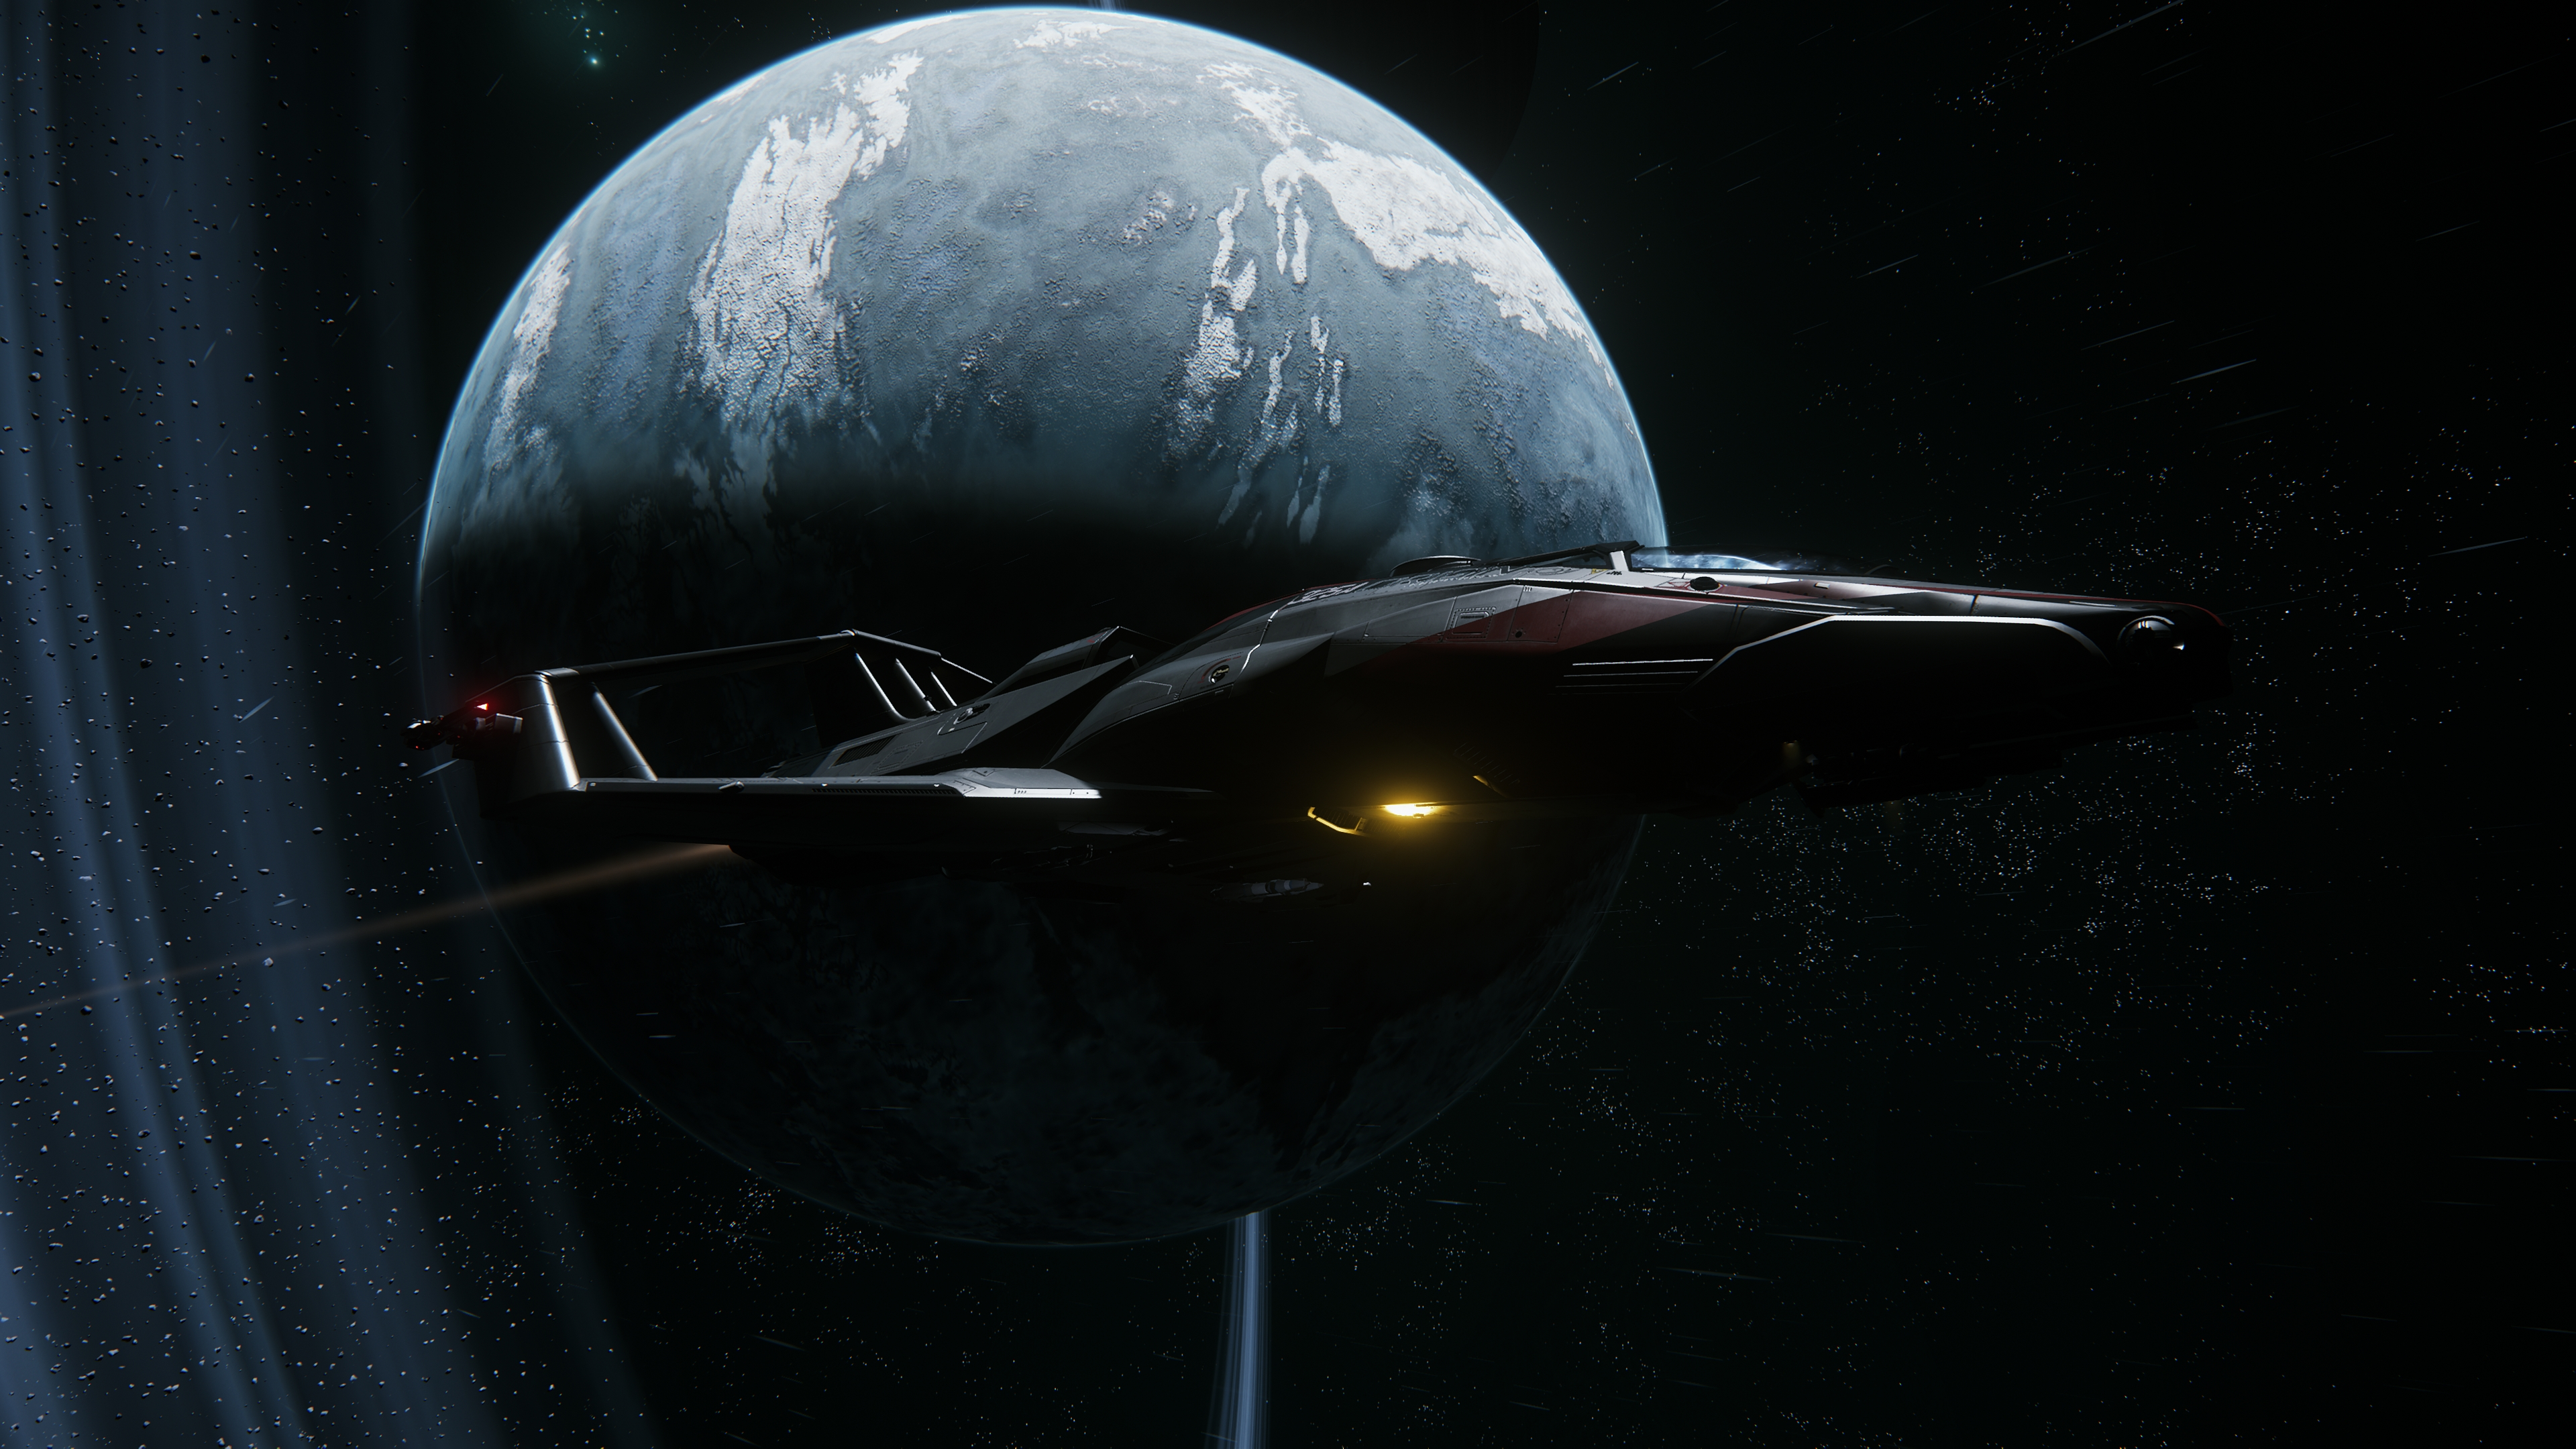 Star Citizen Space 4k, HD Games, 4k Wallpapers, Images